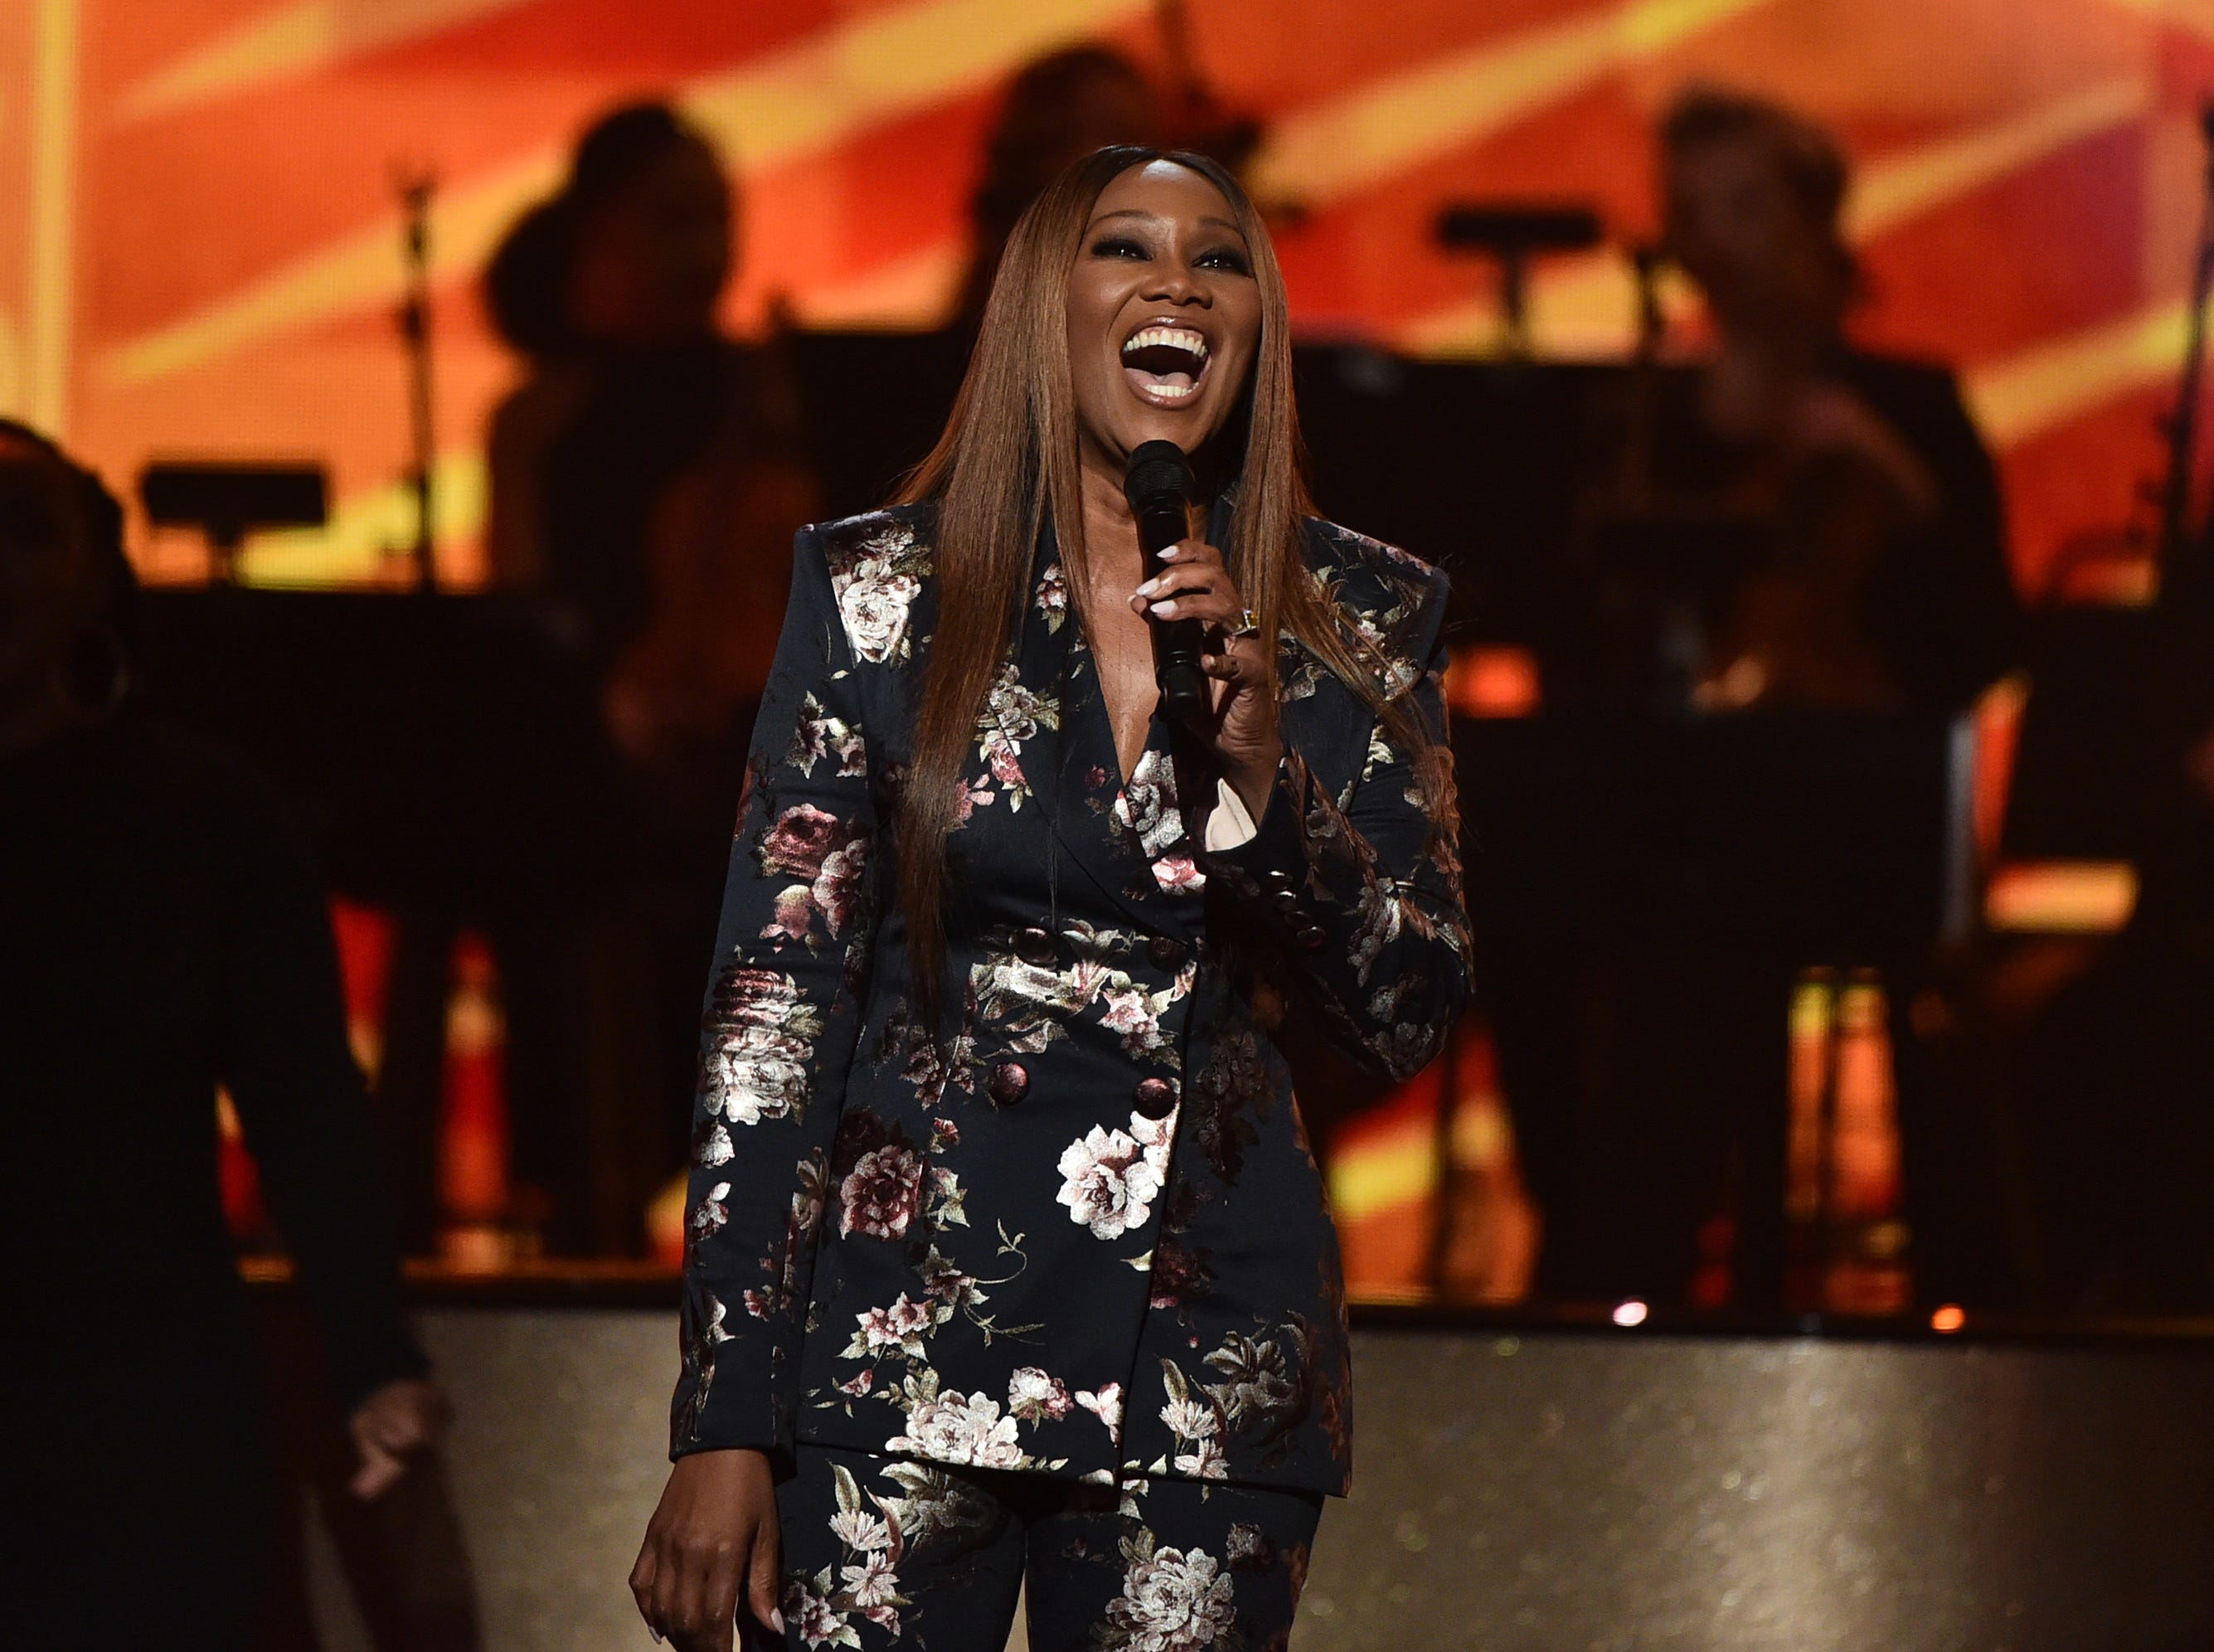 """LOS ANGELES, CA - JANUARY 13:  Yolanda Adams performs at """"Aretha! A Grammy Celebration For the Queen Of Soul"""" at the Shrine Auditorium on Jan. 13, 2019, in Los Angeles, Calif."""